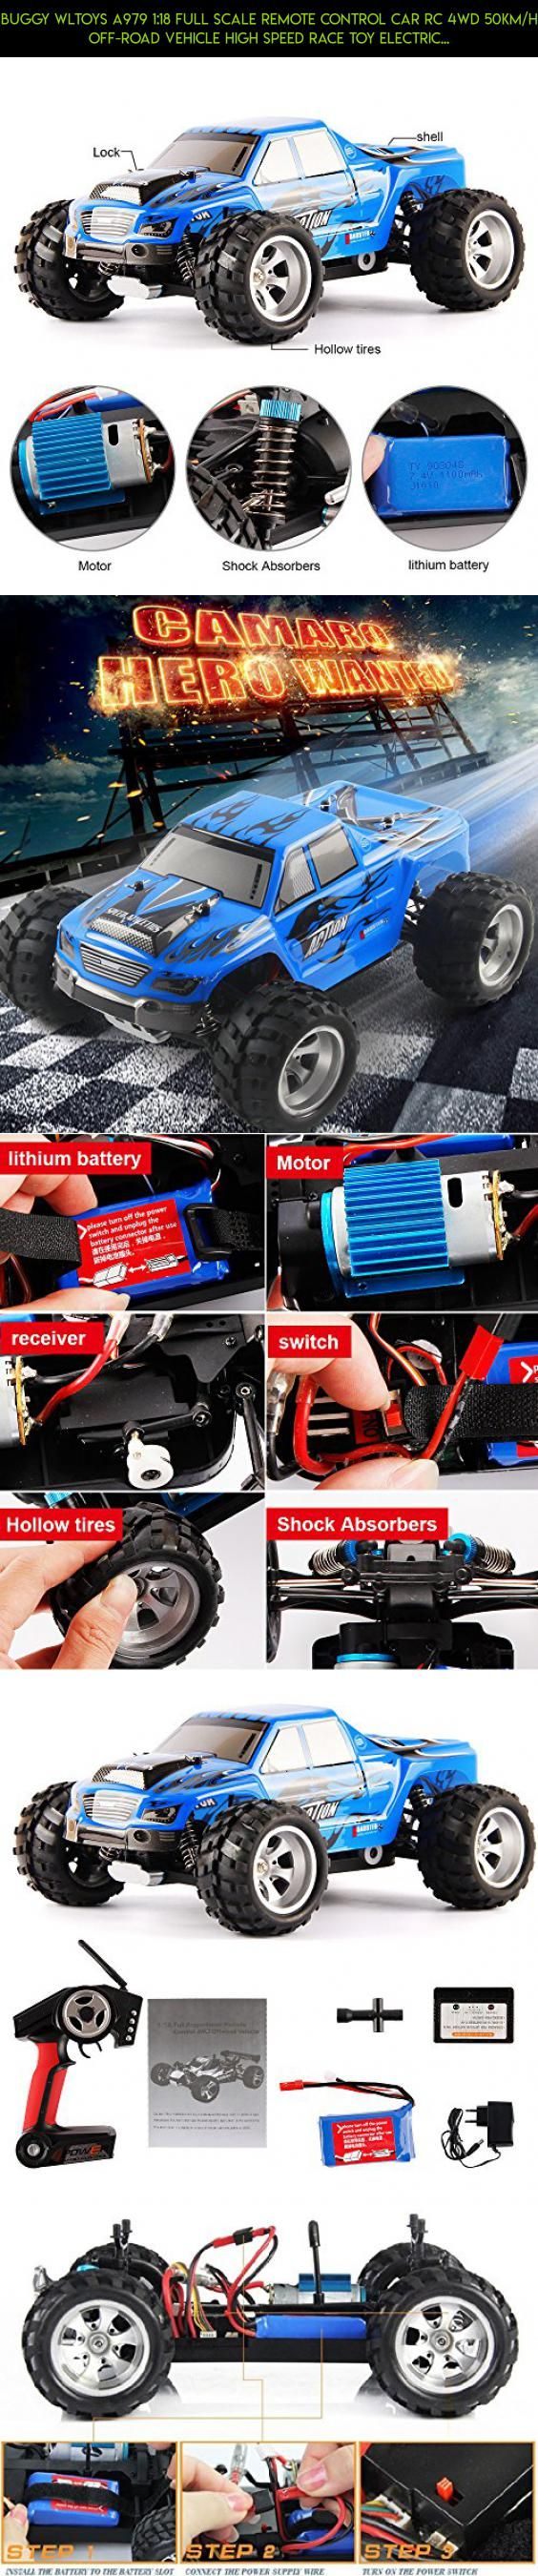 Buggy WLtoys A979 1:18 Full Scale Remote Control Car RC 4WD 50KM/H off-road vehicle High Speed Race Toy Electric Car with Shock Resistant Black FS (-A979-Blue) #racing #parts #gadgets #4wd #camera #wltoys #rc #tech #technology #shopping #products #drone #kit #plans #fpv